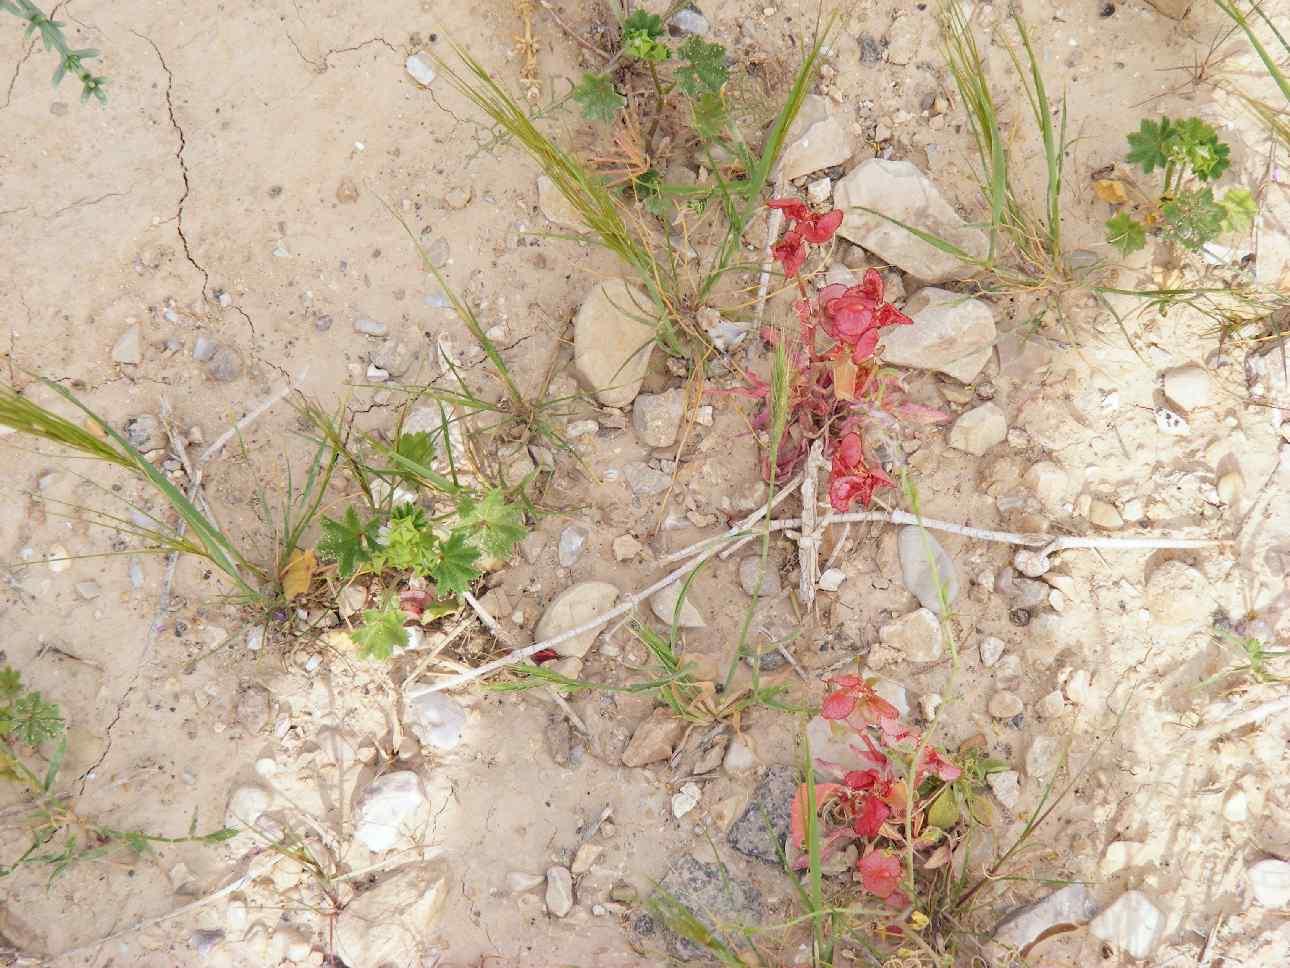 Blooming in extreme desert following 2013 floods, Arava